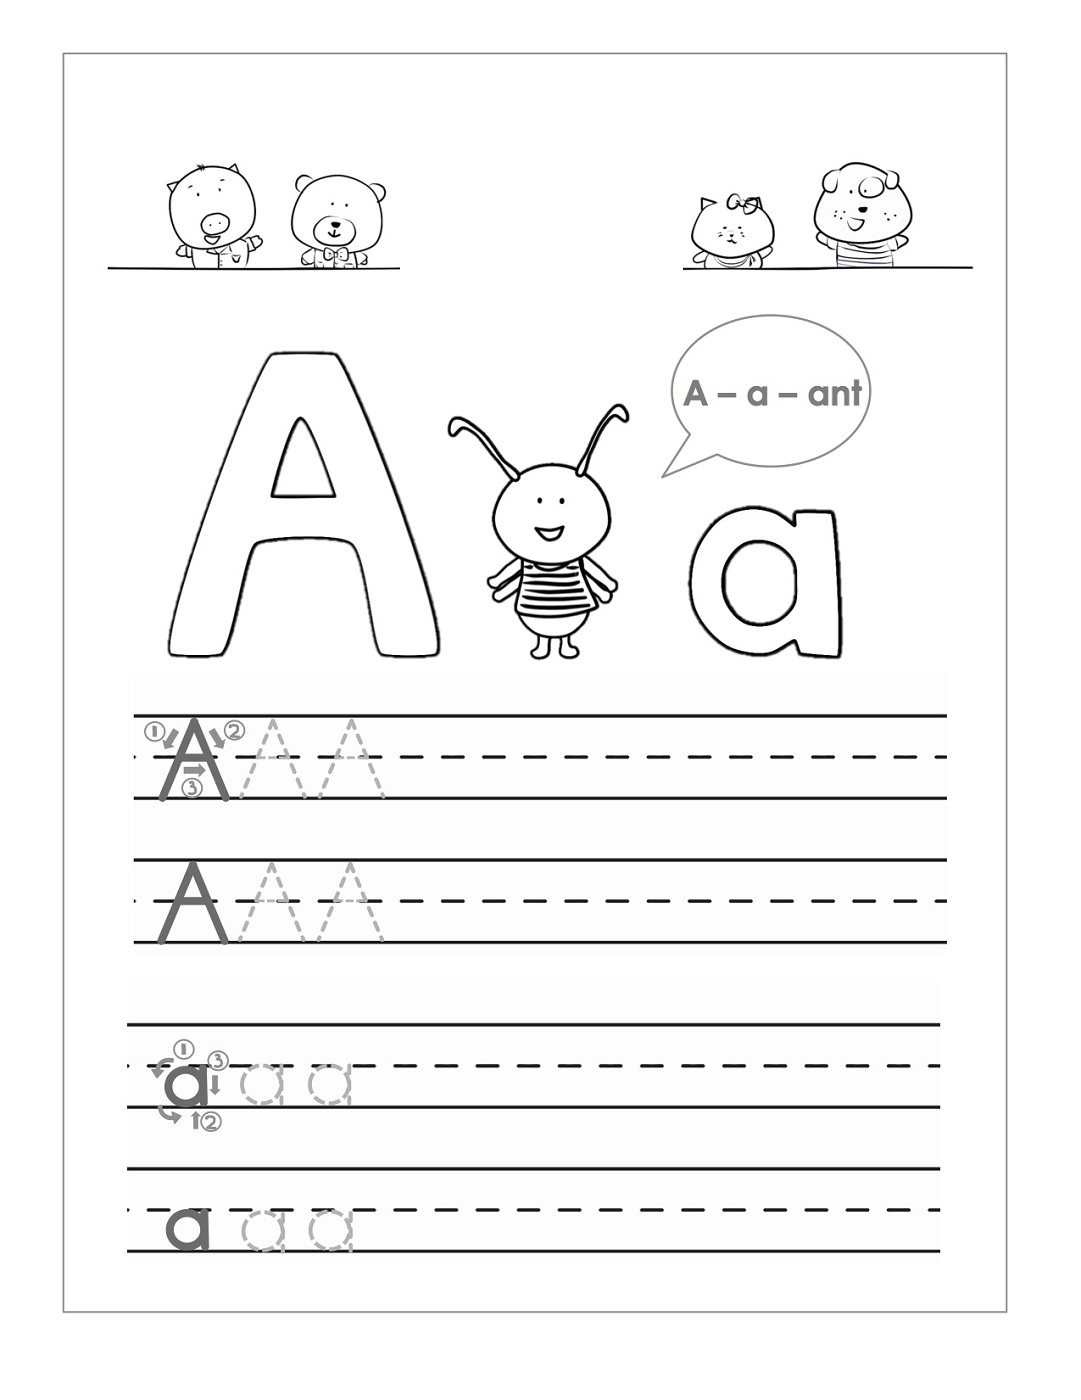 coloring worksheet for letter a tracing the letter a free printable activity shelter coloring for worksheet a letter